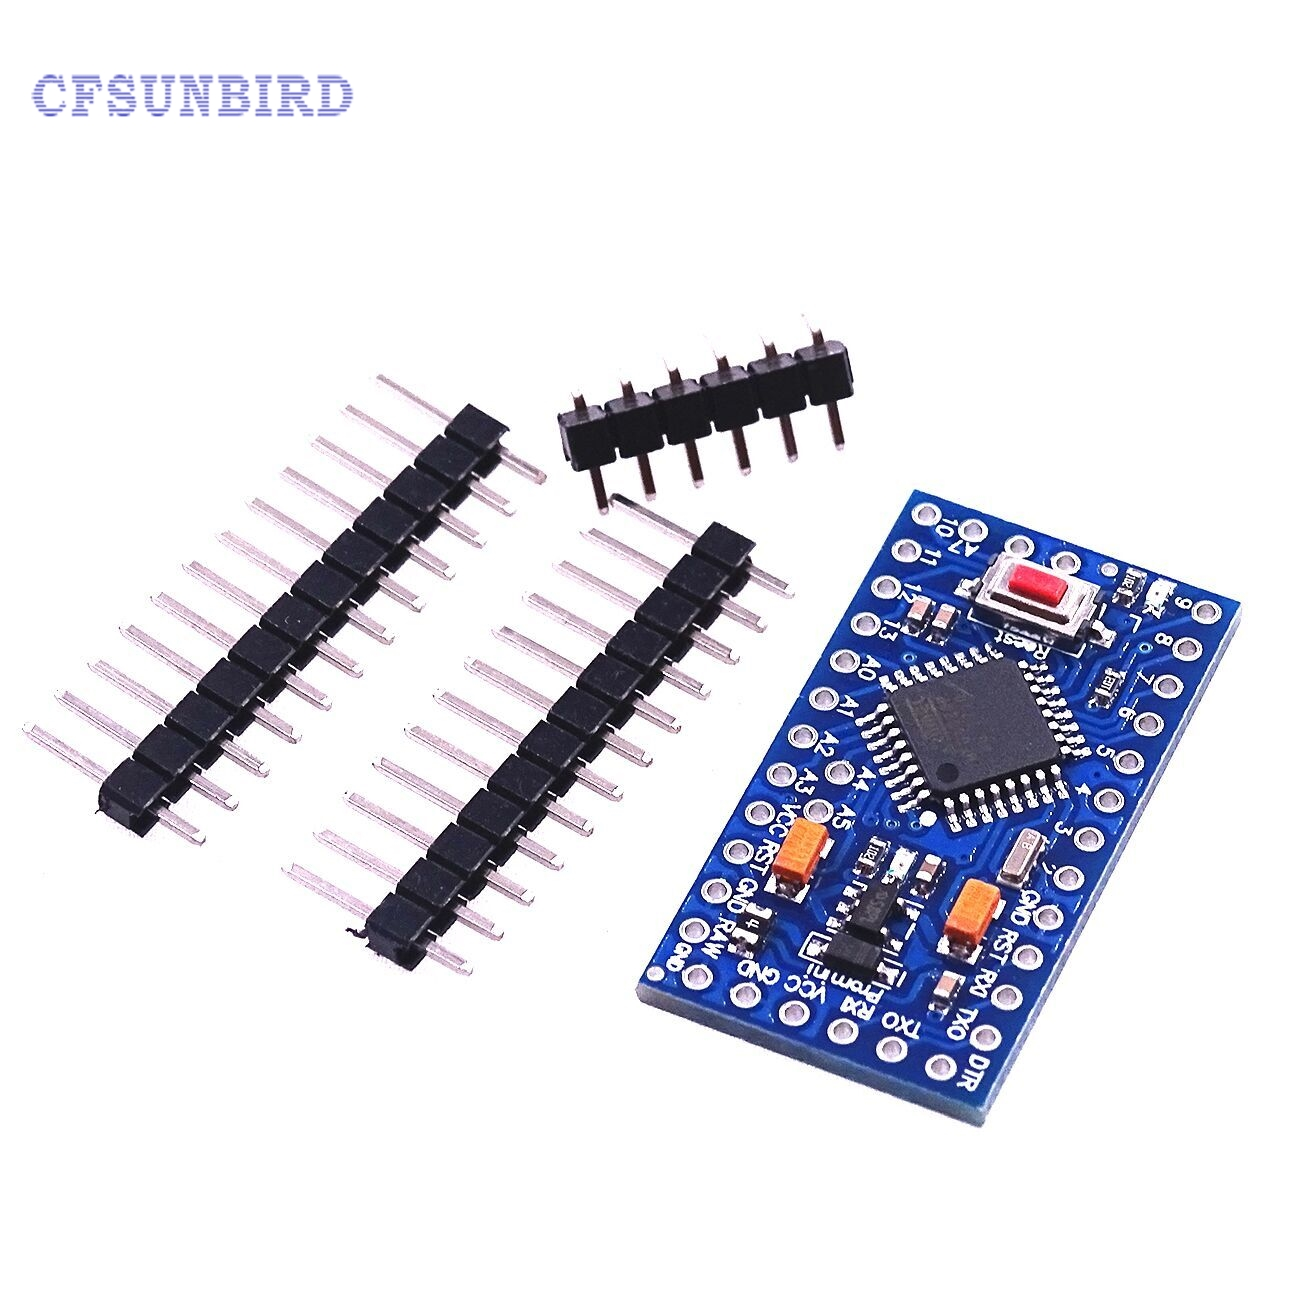 все цены на  CFsunbird 10pcs/lot ATMEGA328P Pro Mini 328 Mini ATMEGA328 5V 16MHz for Arduino 5V 16M  онлайн